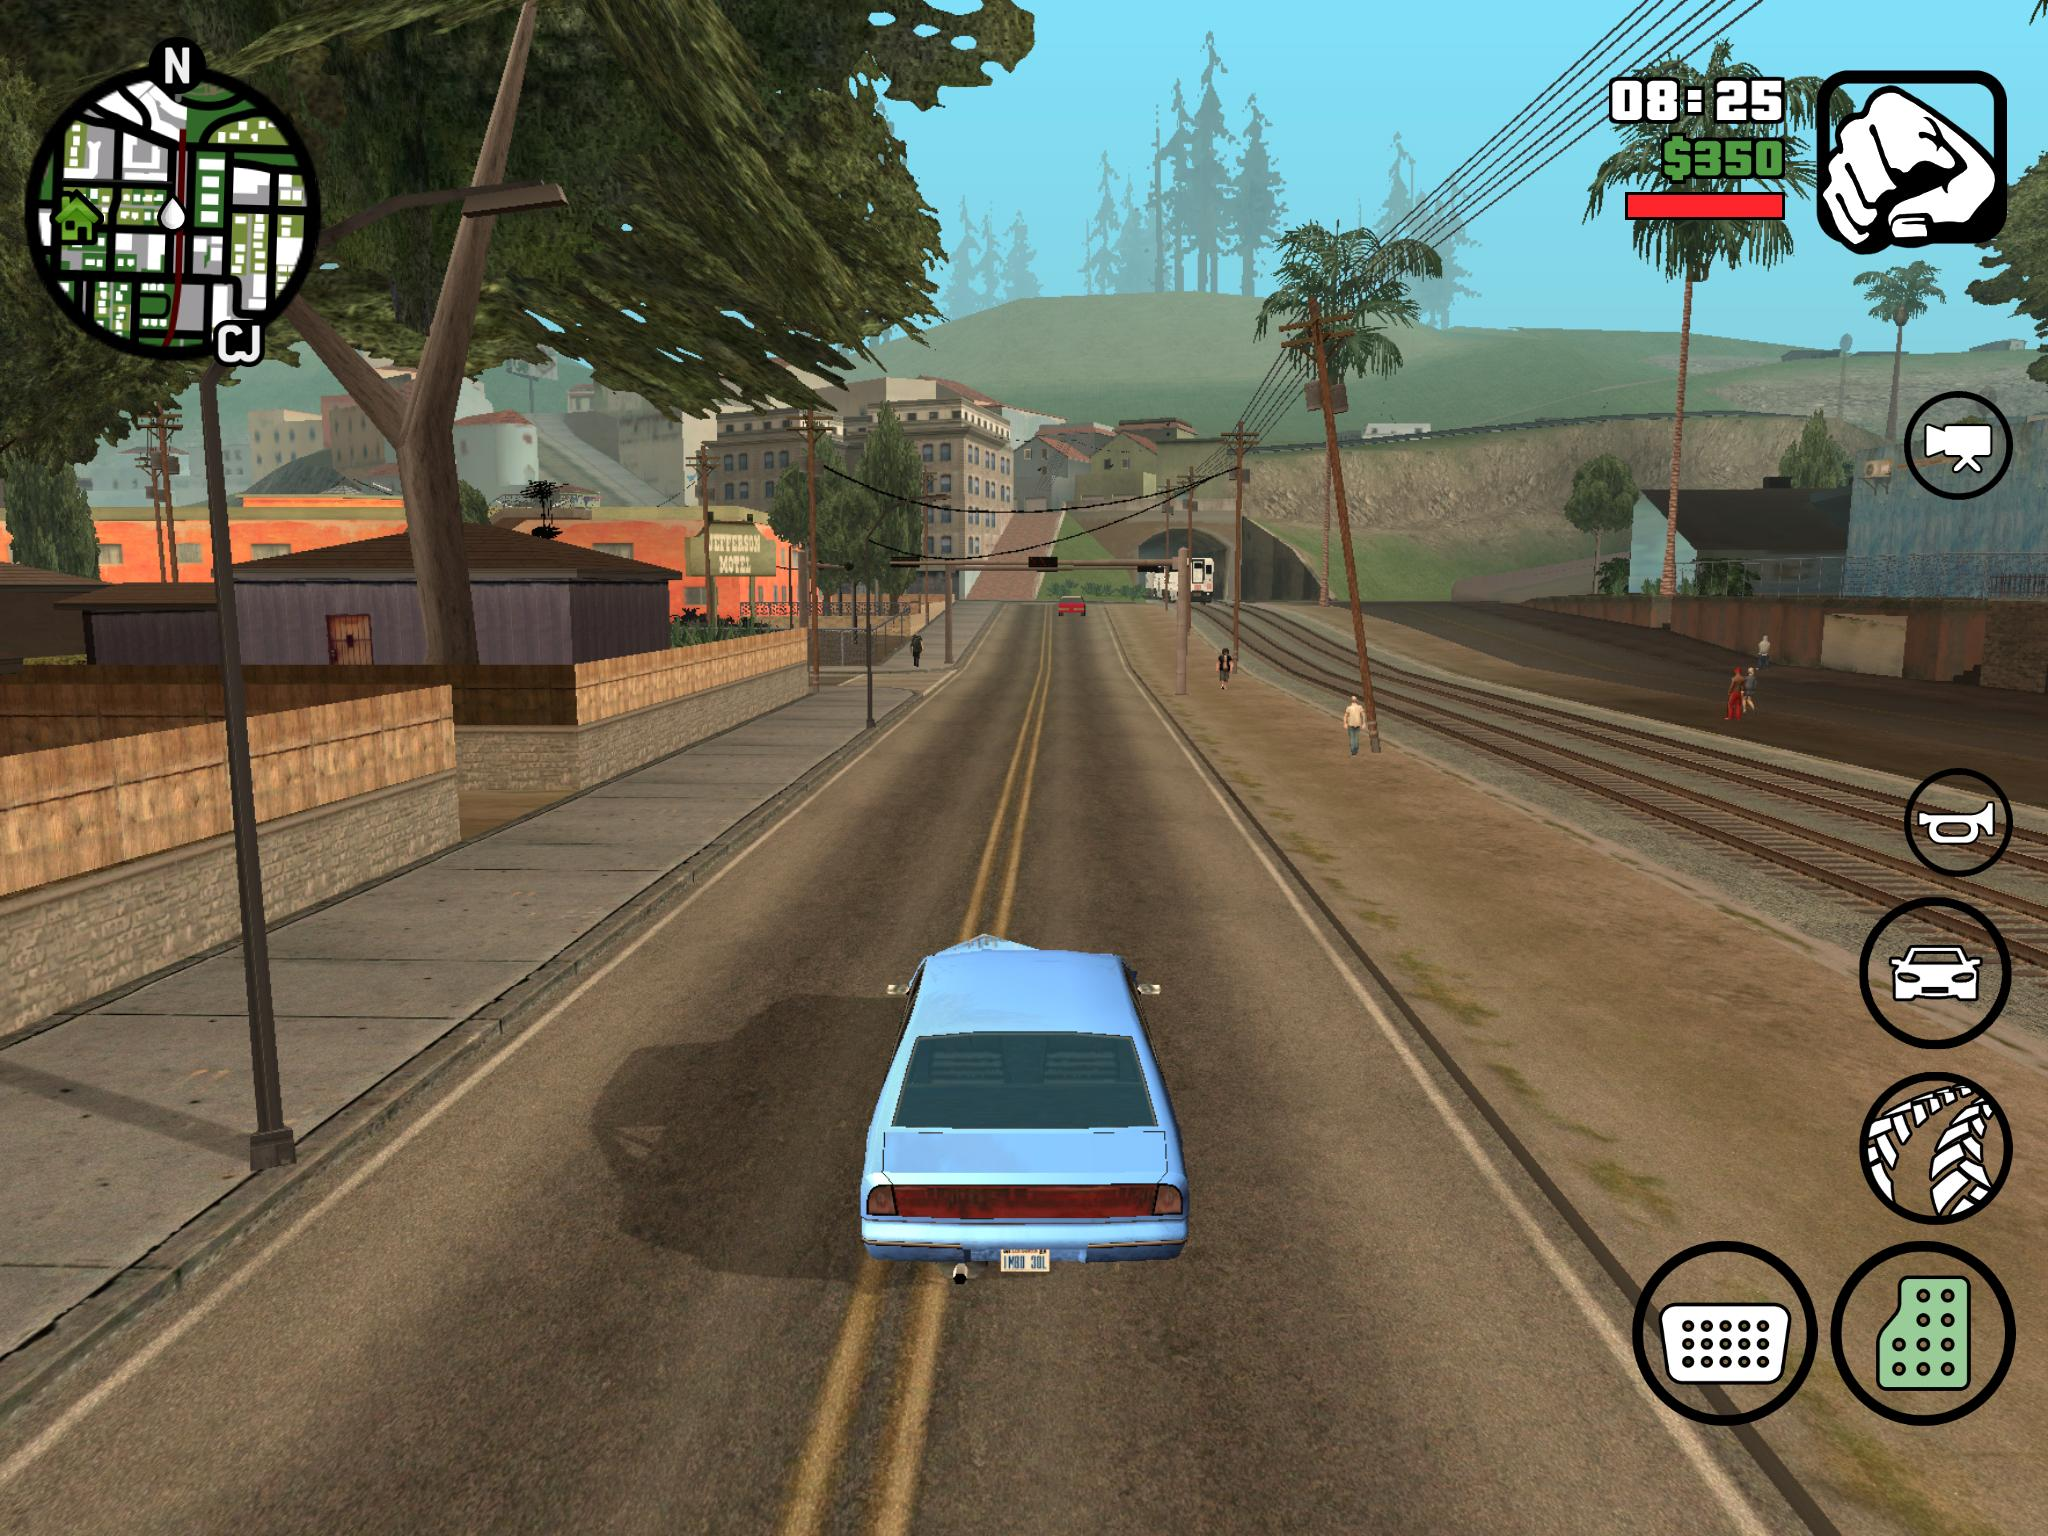 grand theft auto san andreas full game download torrent